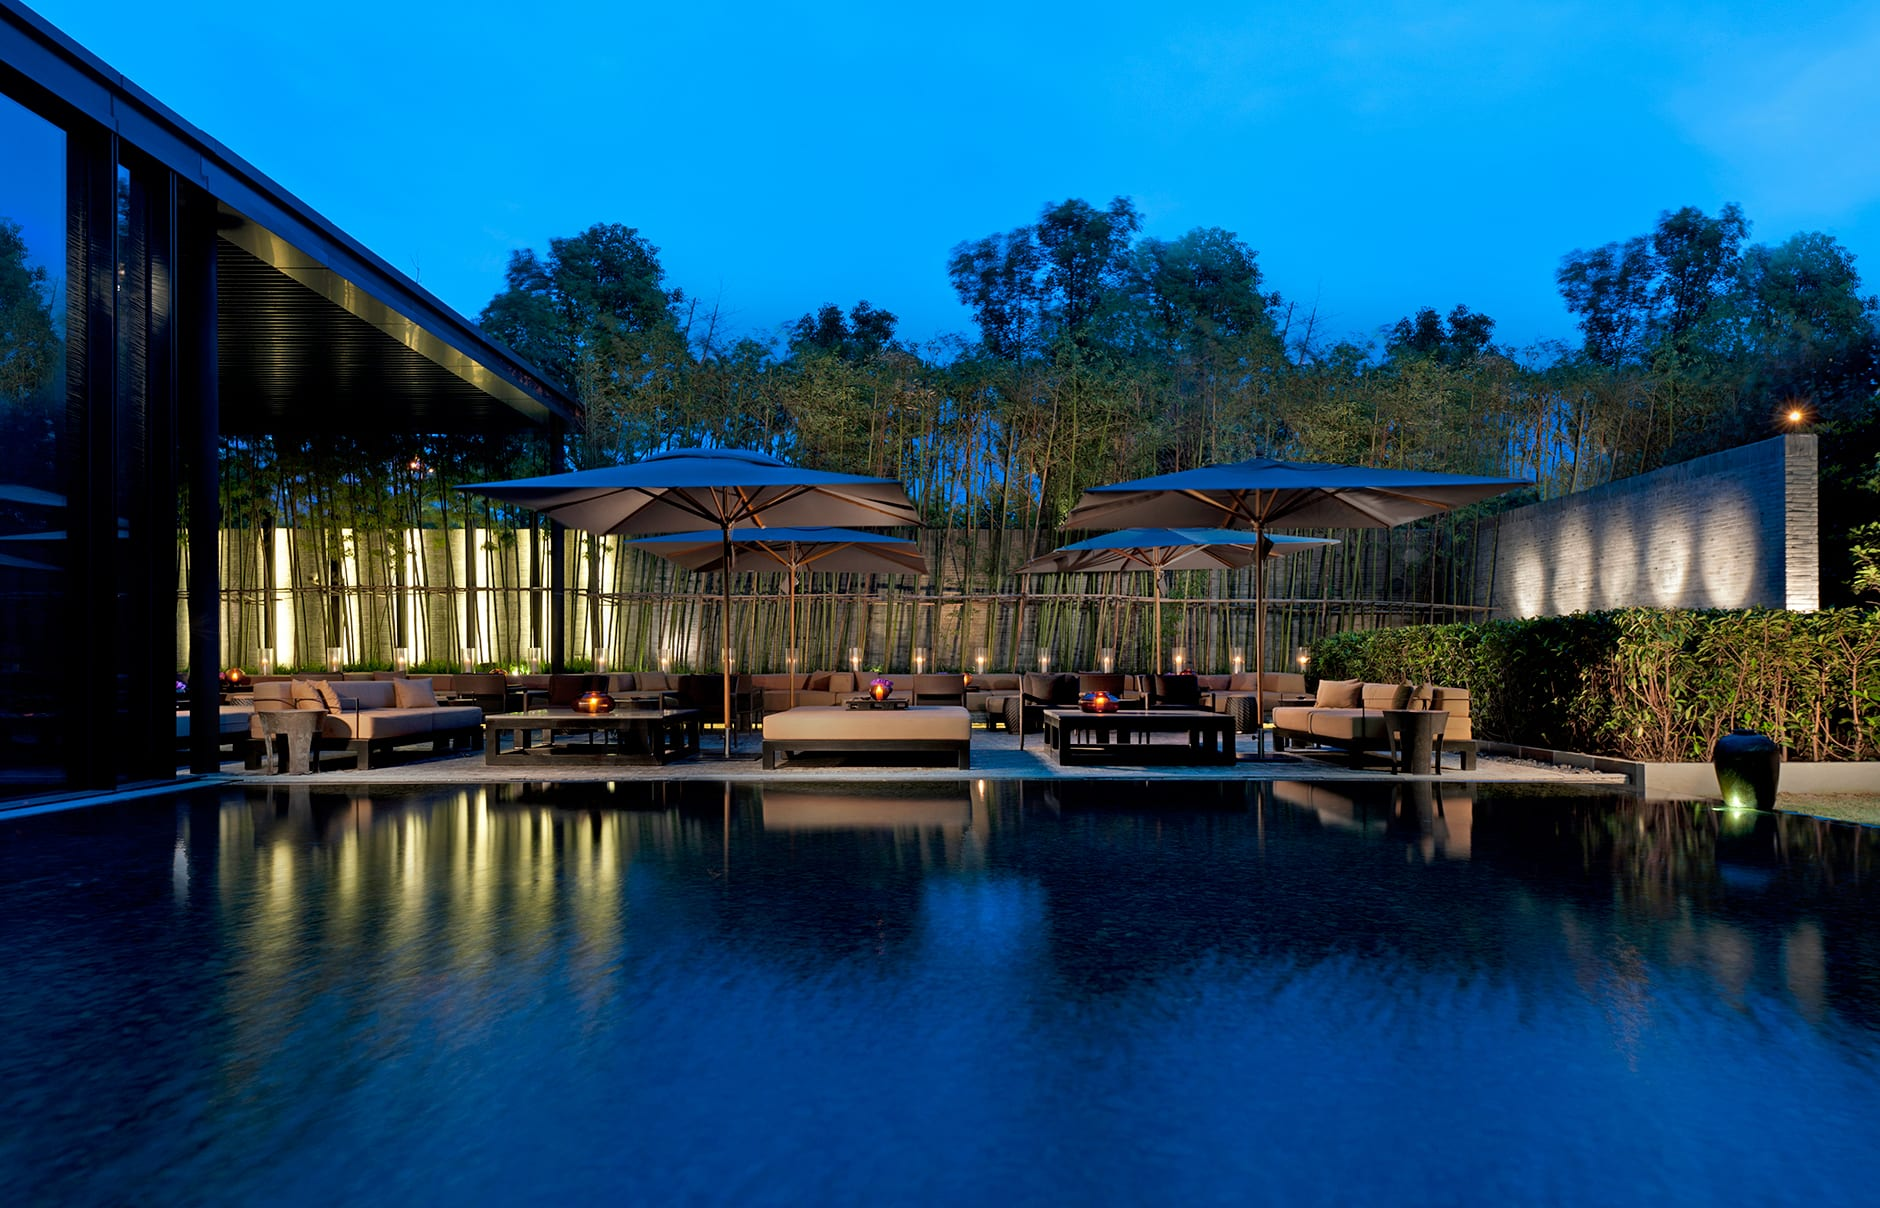 Garden Terrace. The PuLi Hotel and Spa Shanghai, China. © The PuLi Hotel and Spa.